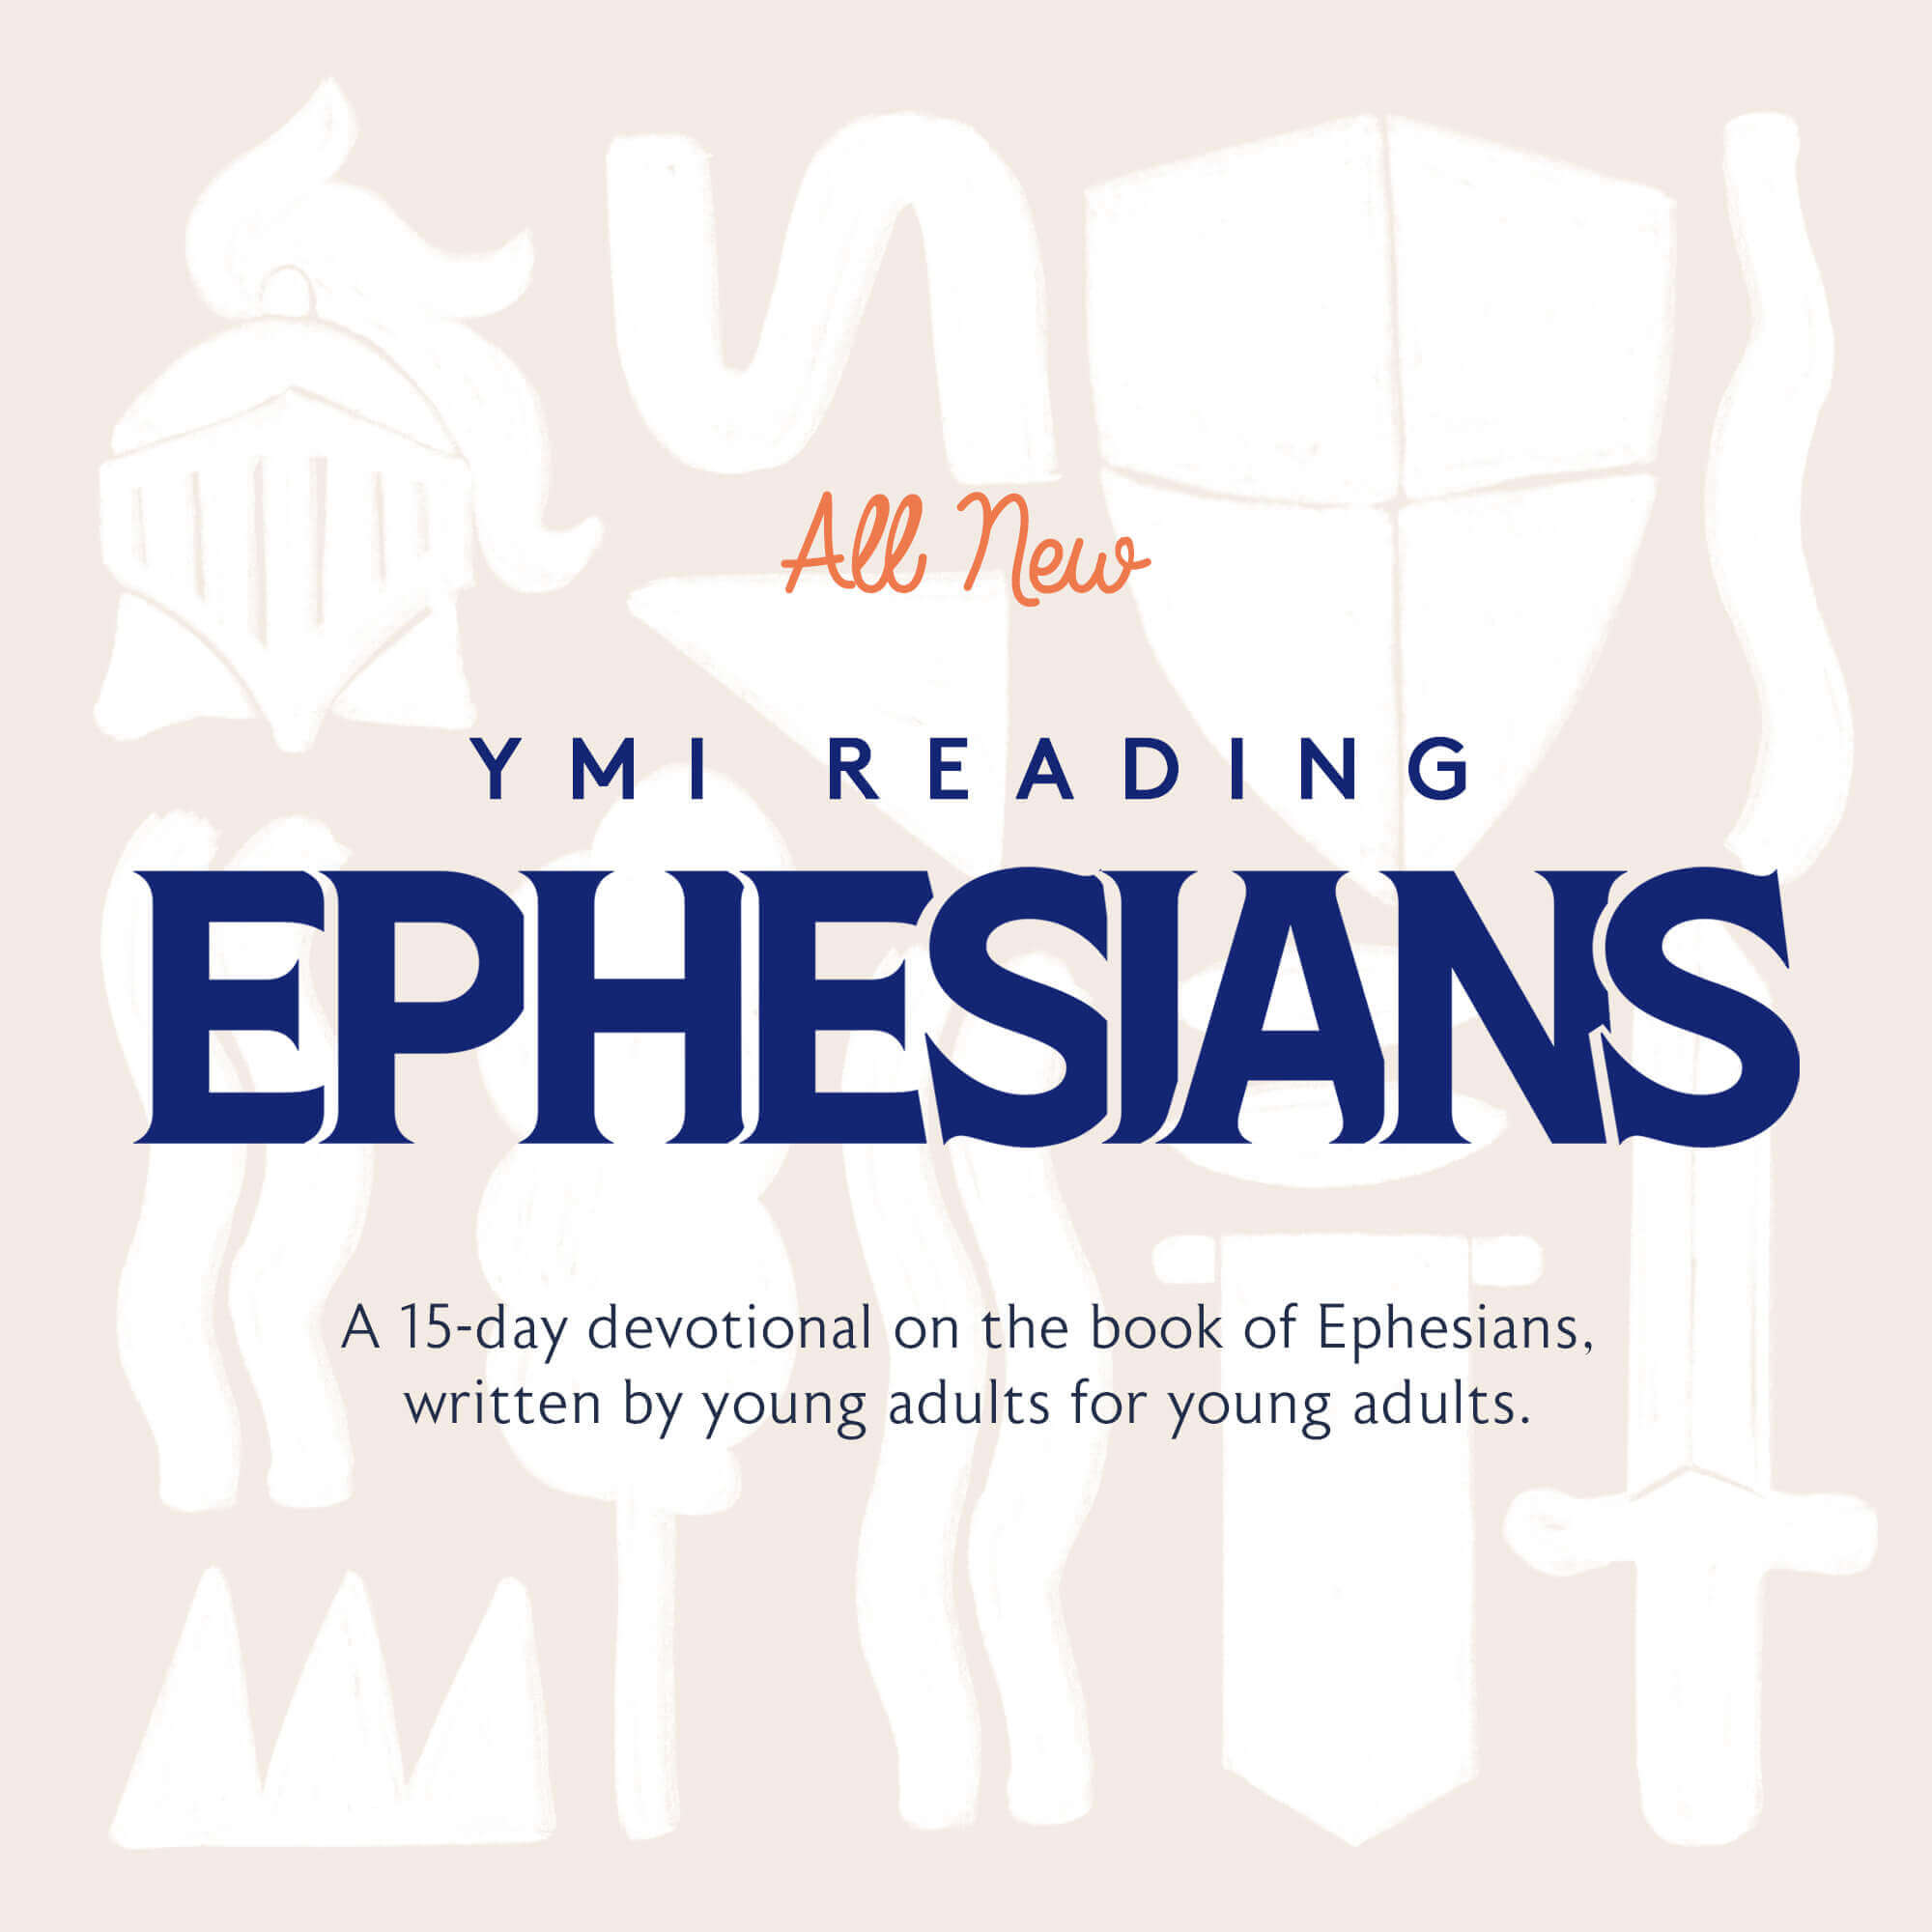 YMI Reading Ephesians. A 15-day devotional on the book of Ephesians, written by young adults for young adults.